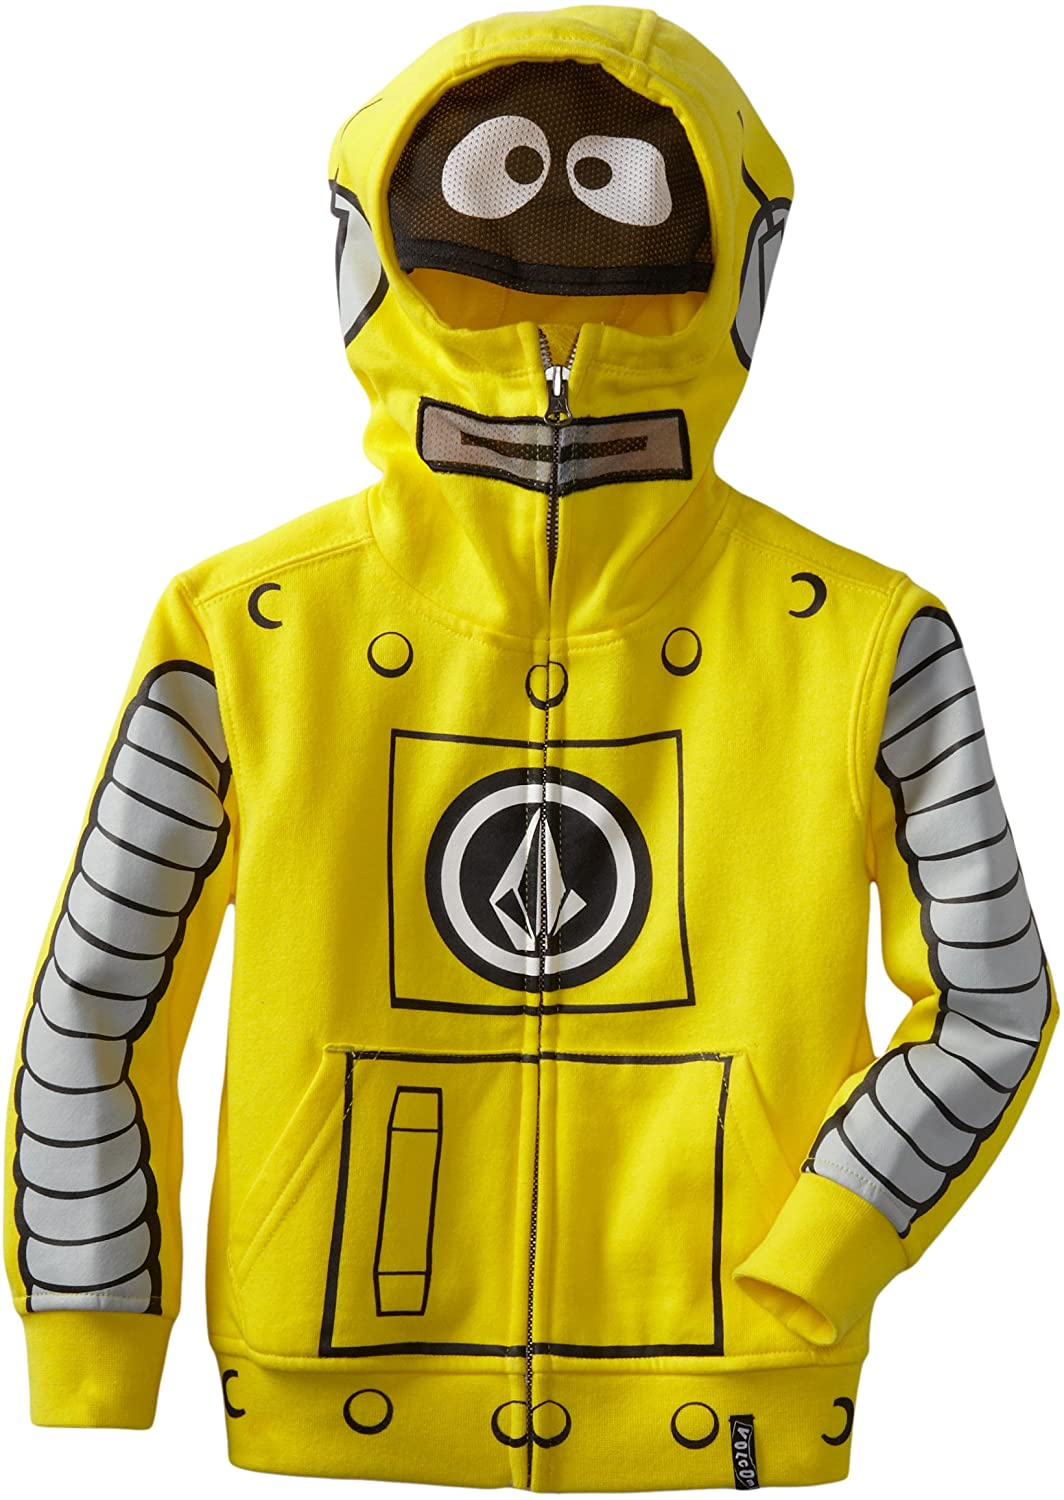 Volcom Little Boys' Yogabba Youth Max 59% OFF Full-Zip Sweater ! Super beauty product restock quality top!